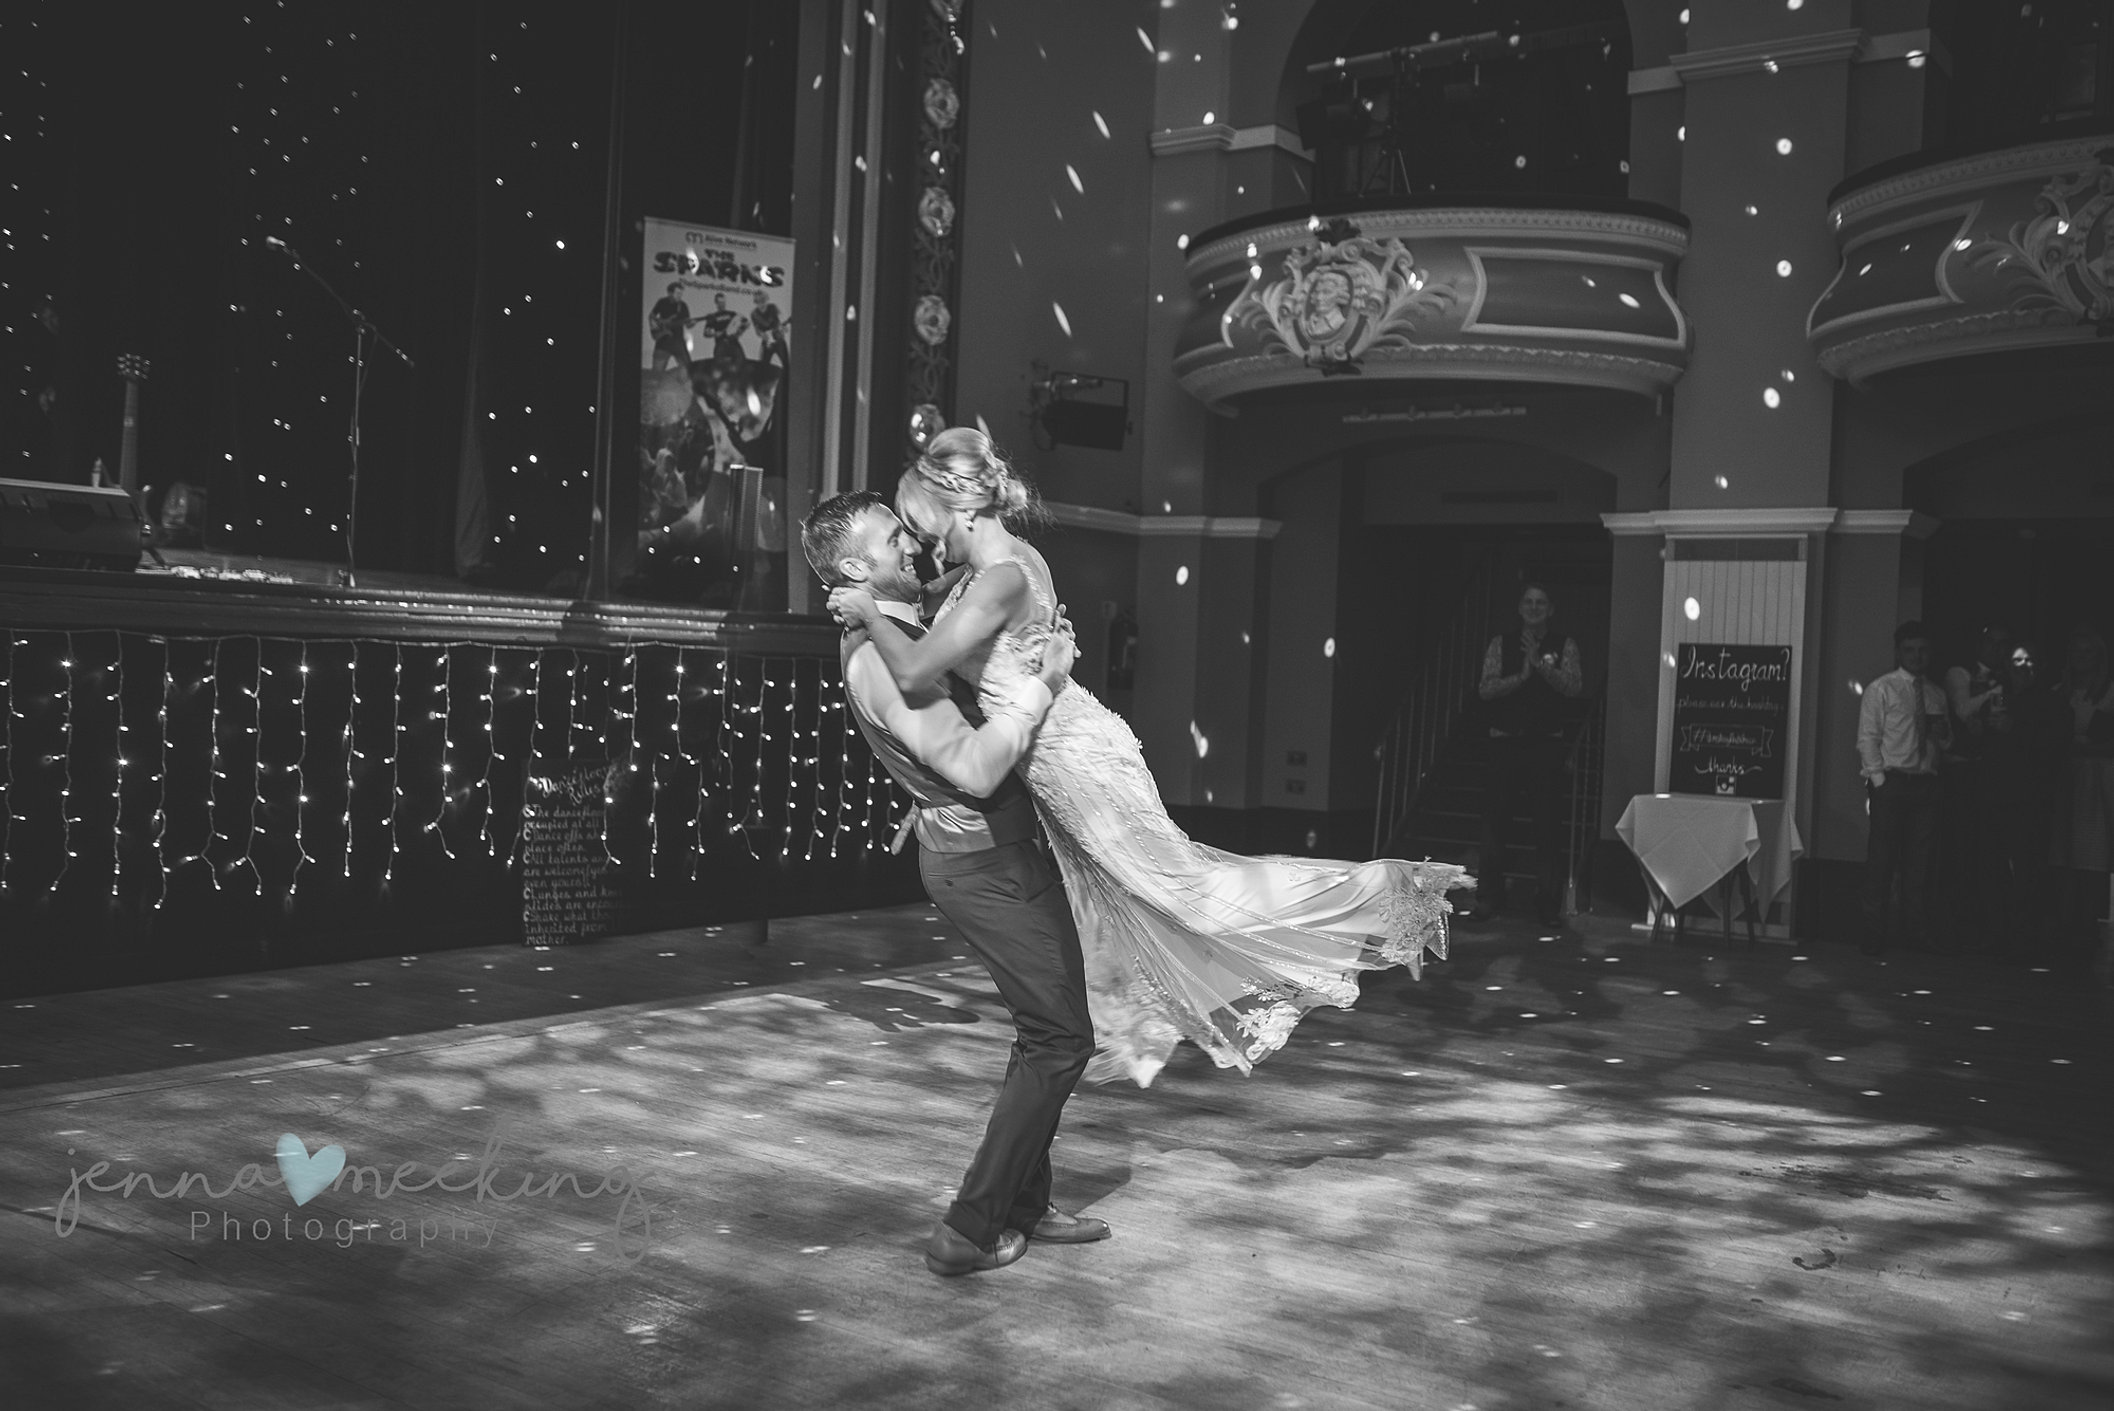 wedding photographer west yorkshire jenna meeking photography